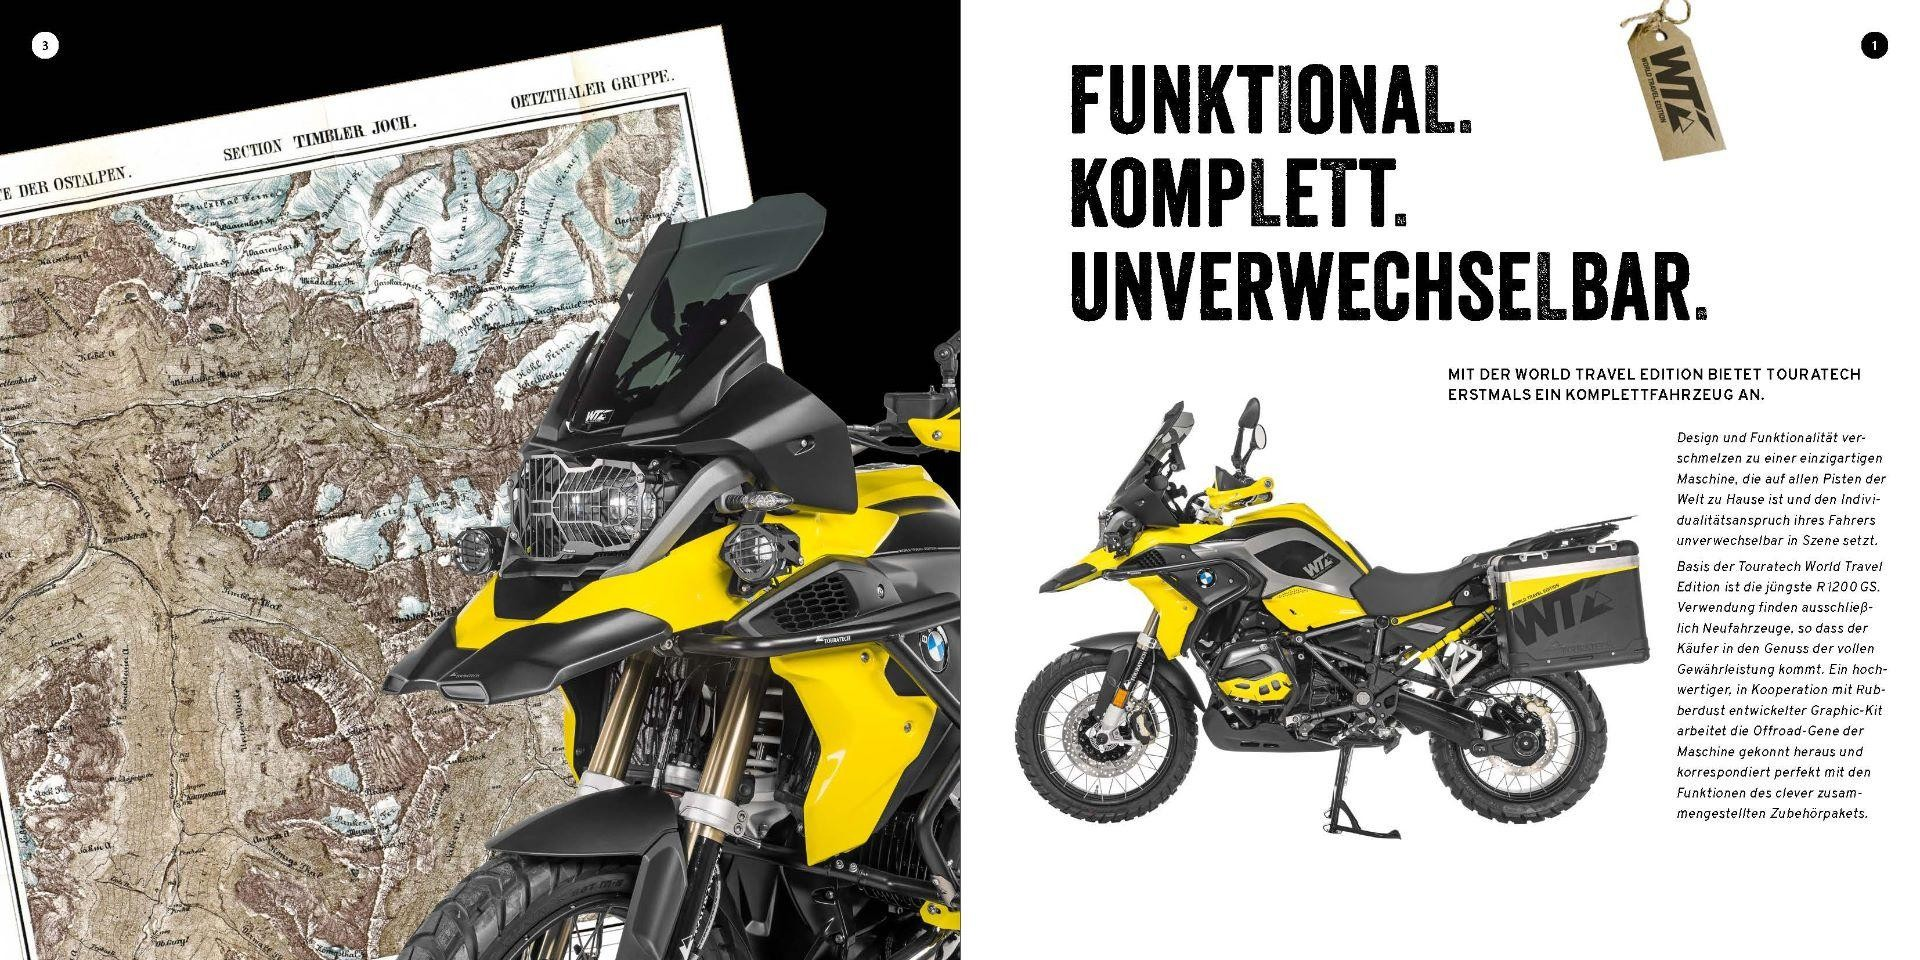 BMW GS 1200 R Touratech World Travel Edition Adventure in